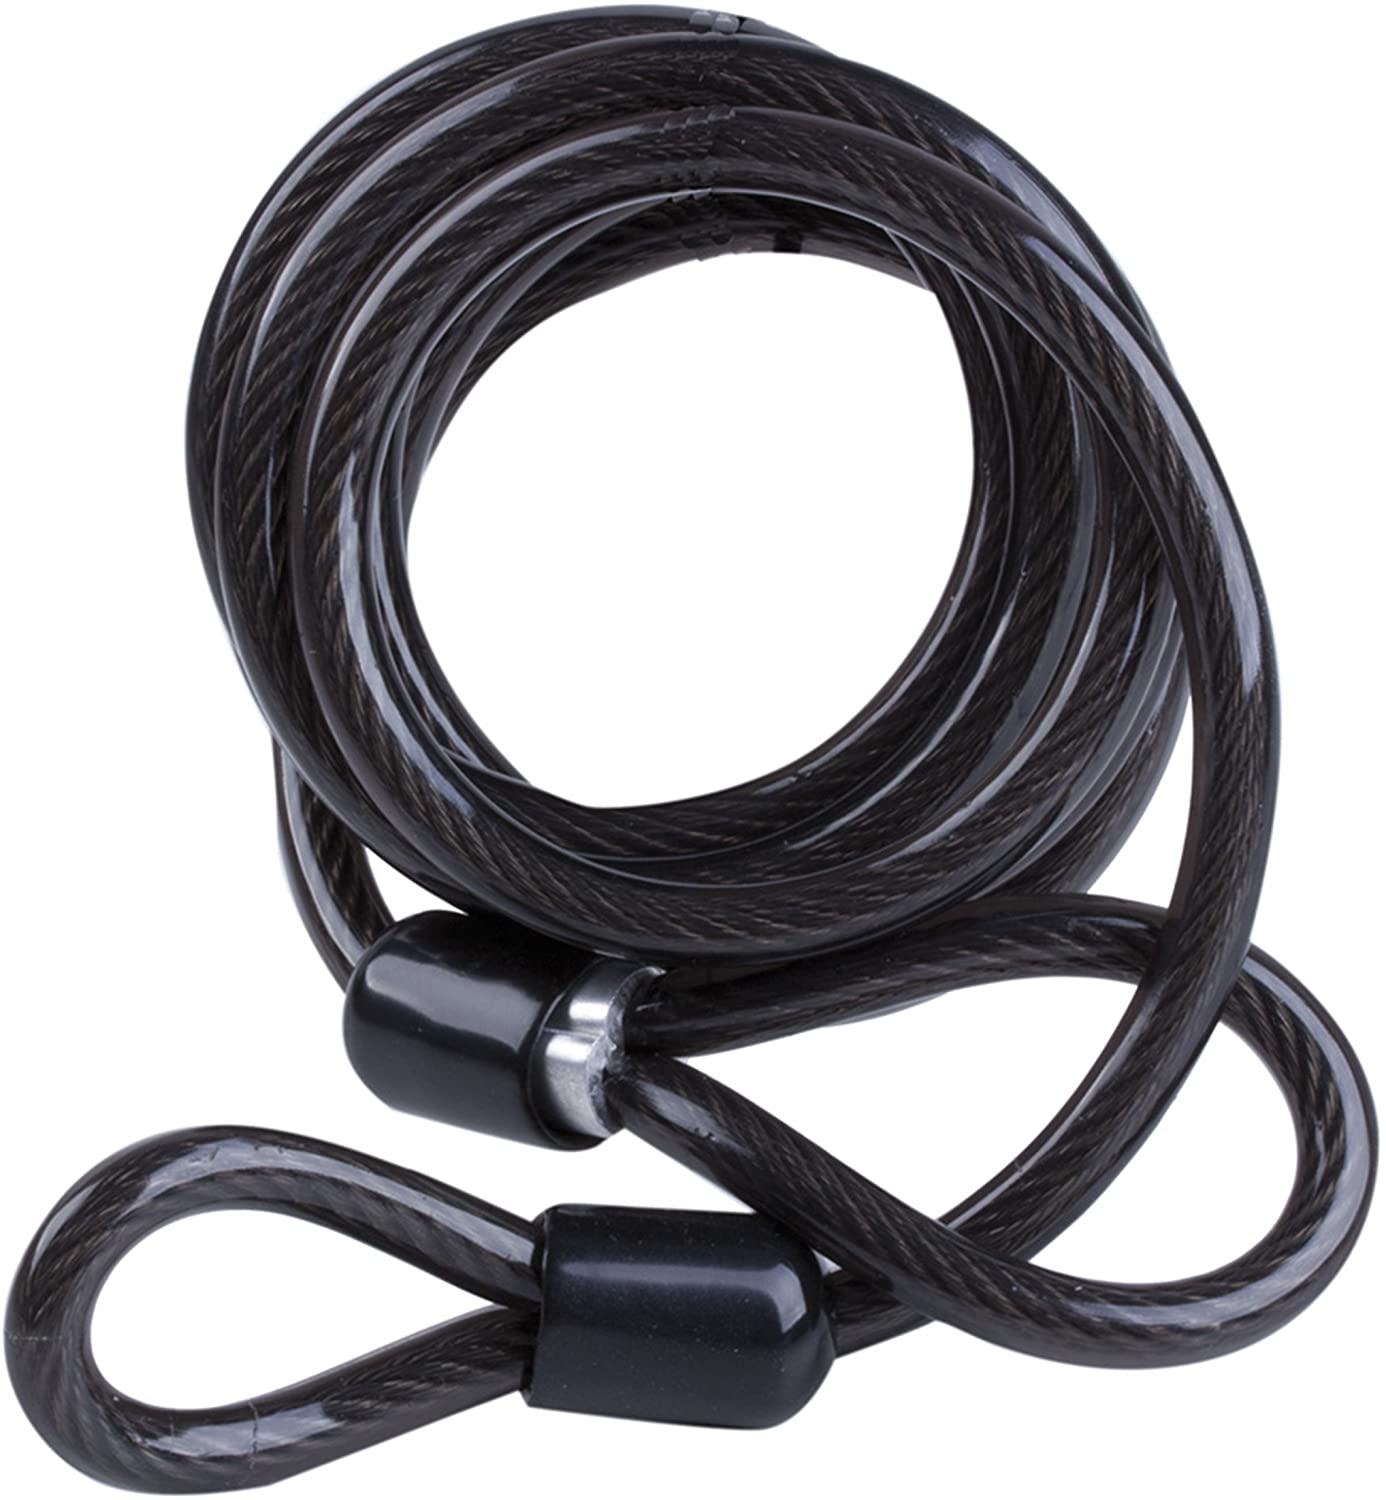 M-Wave Looped Spiral Cable